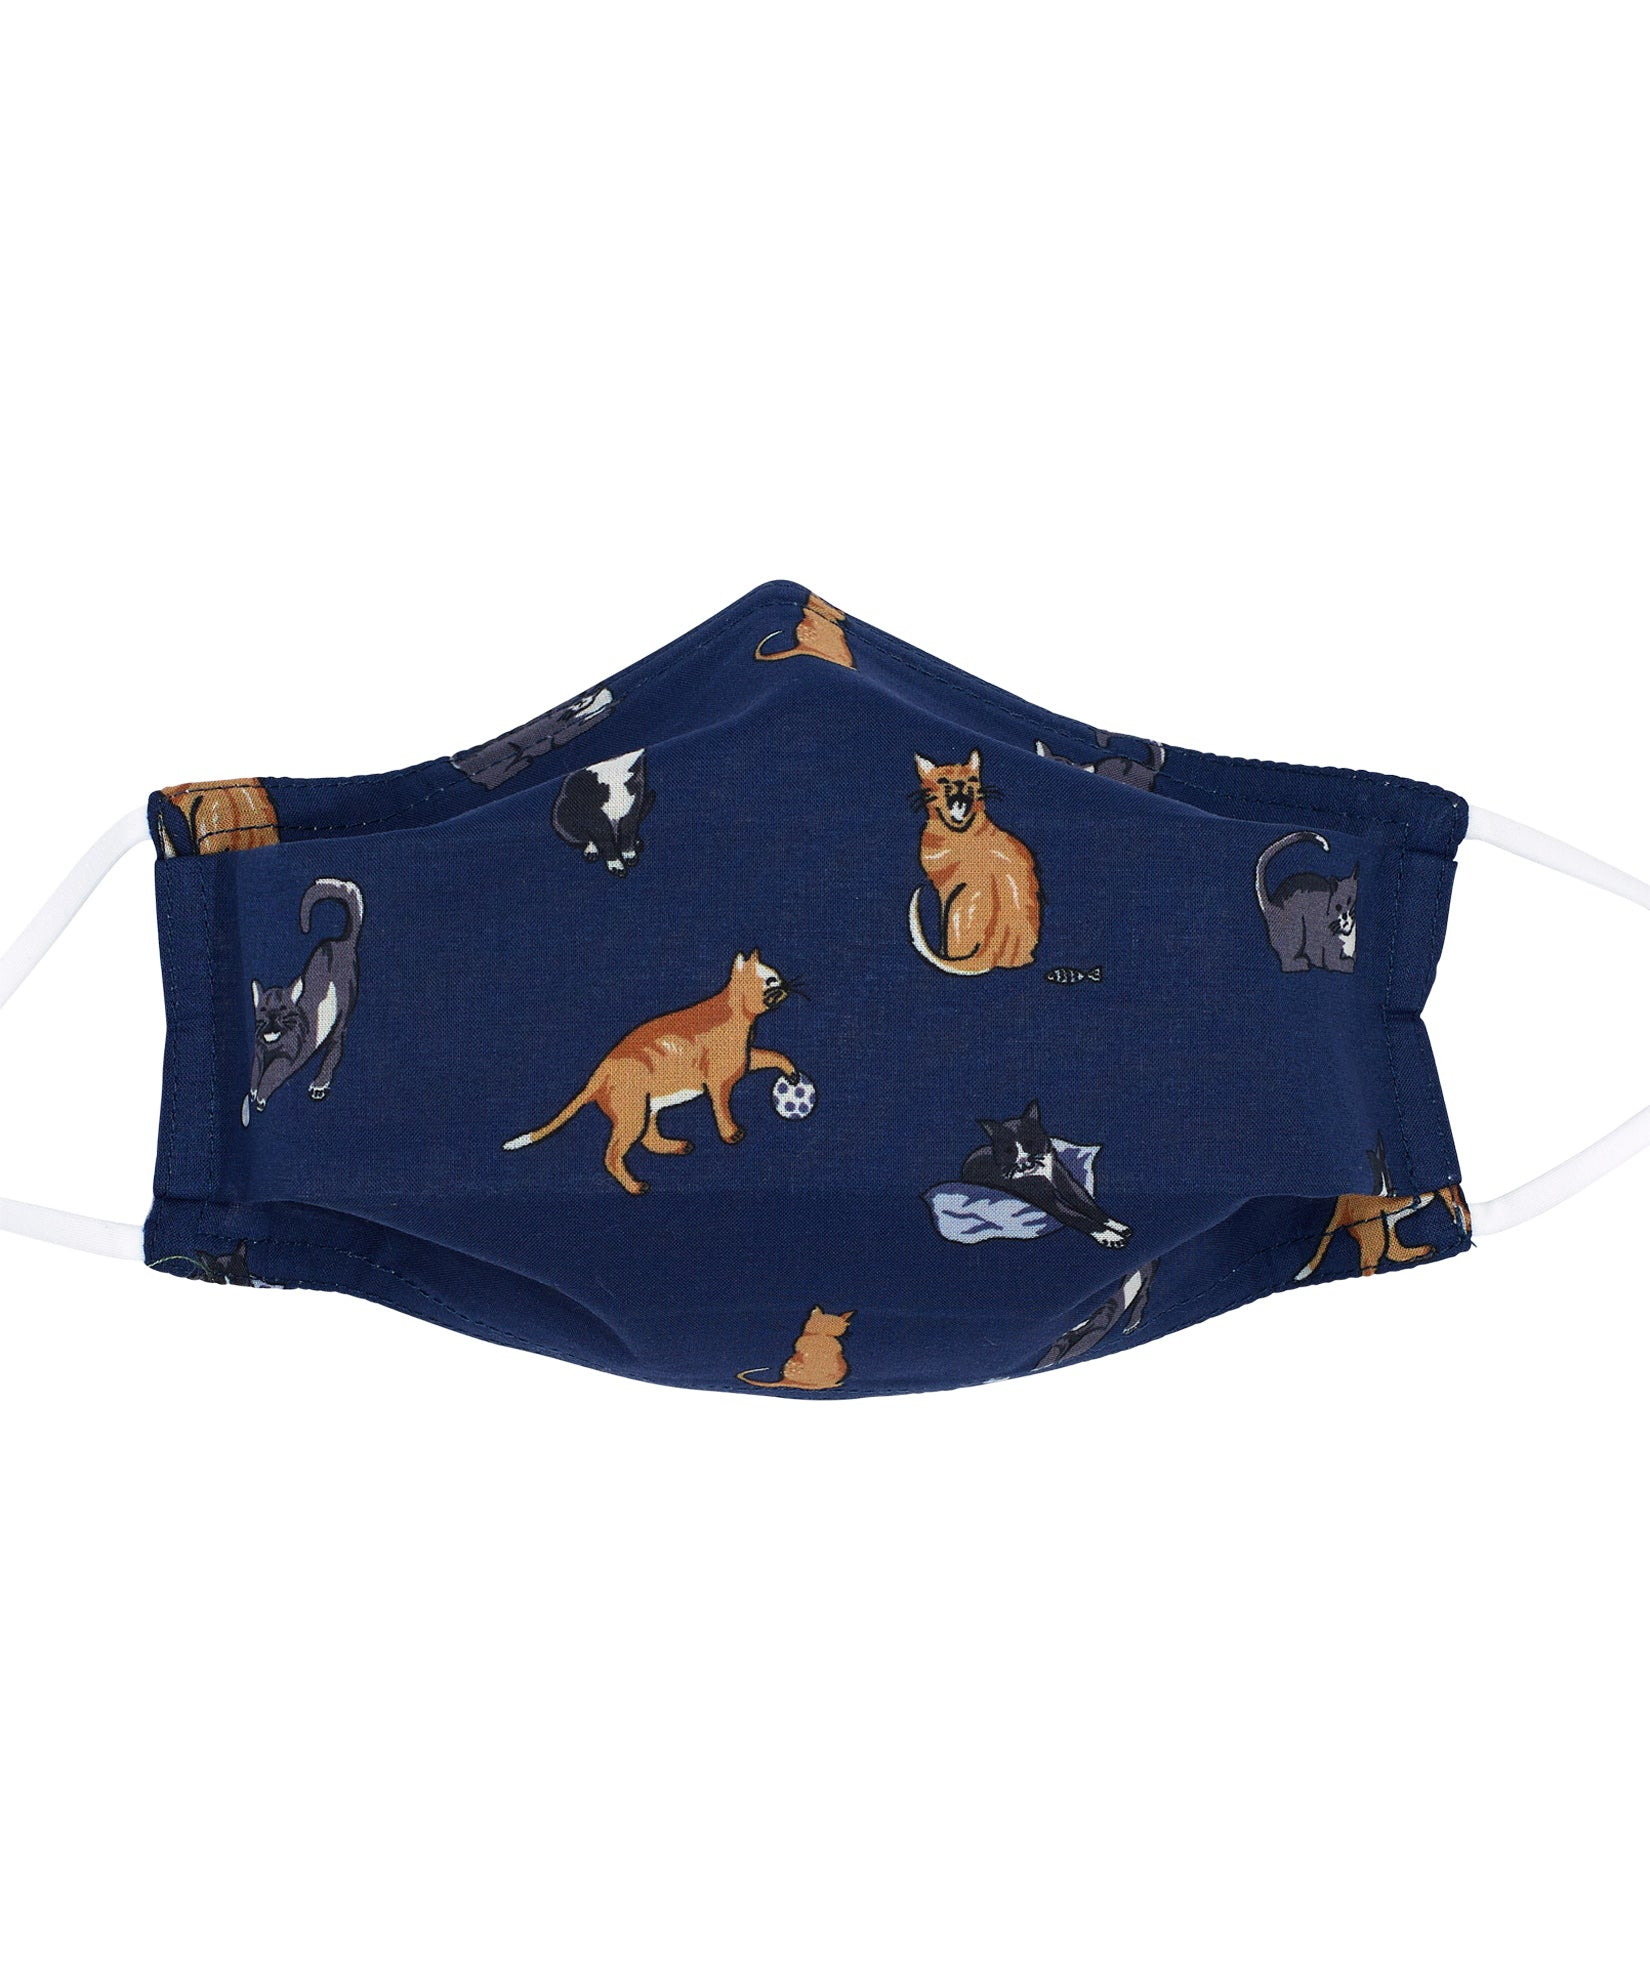 Navy - Cat's Meow Cooling Mask